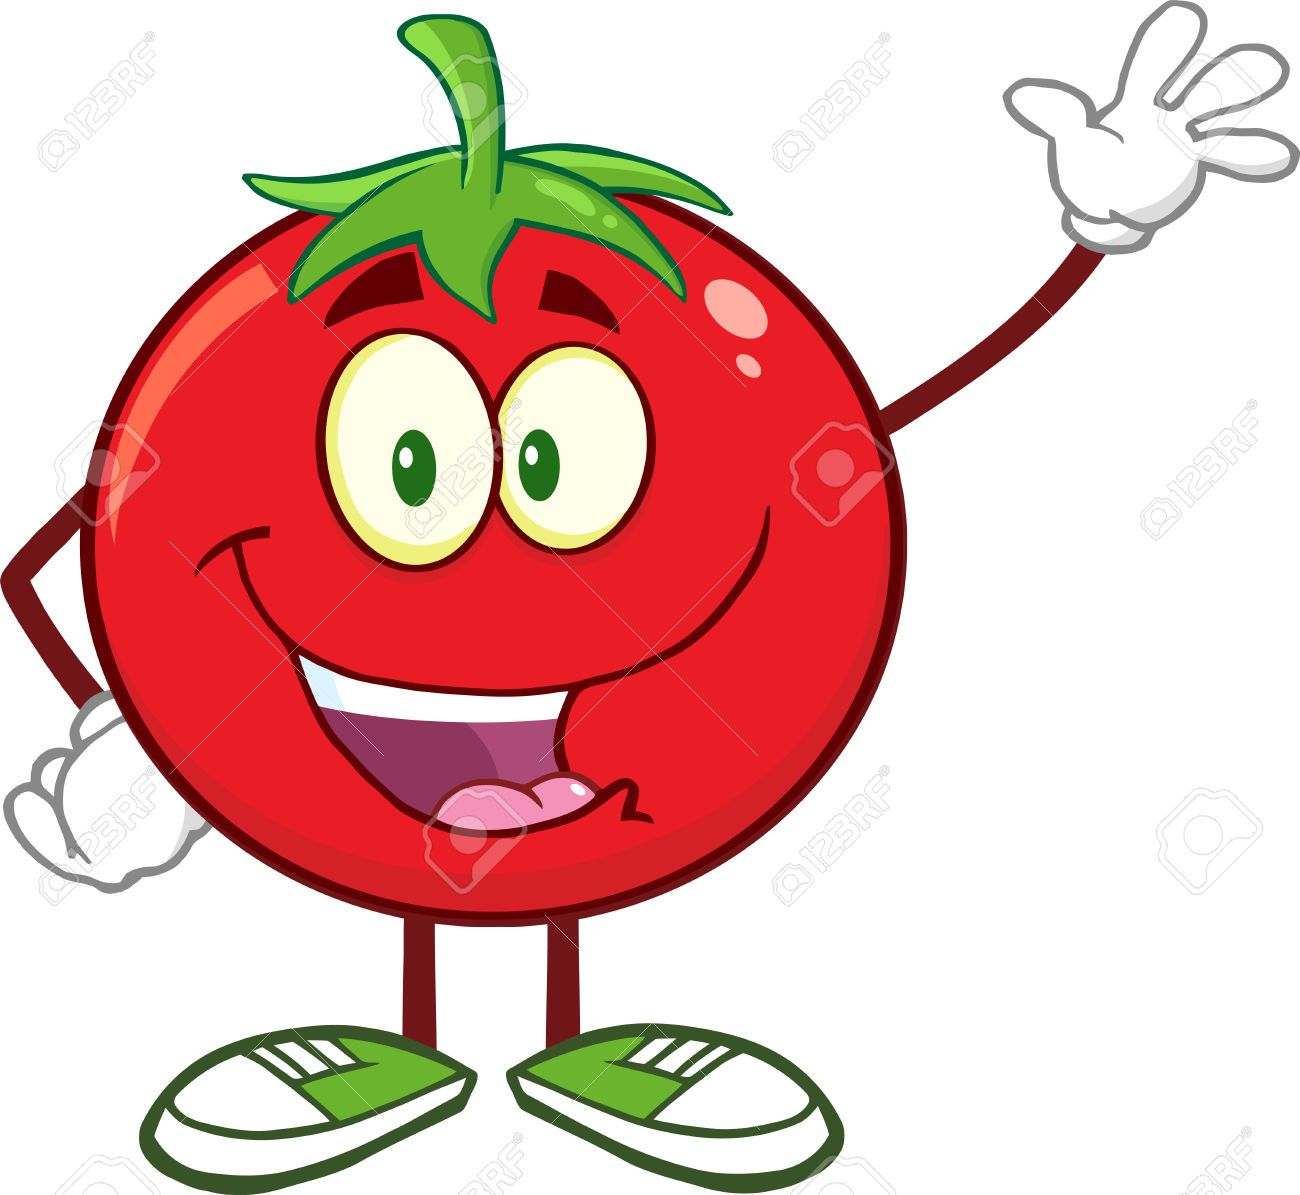 Cartoon tomatoe images google. Tomatoes clipart happy tomato